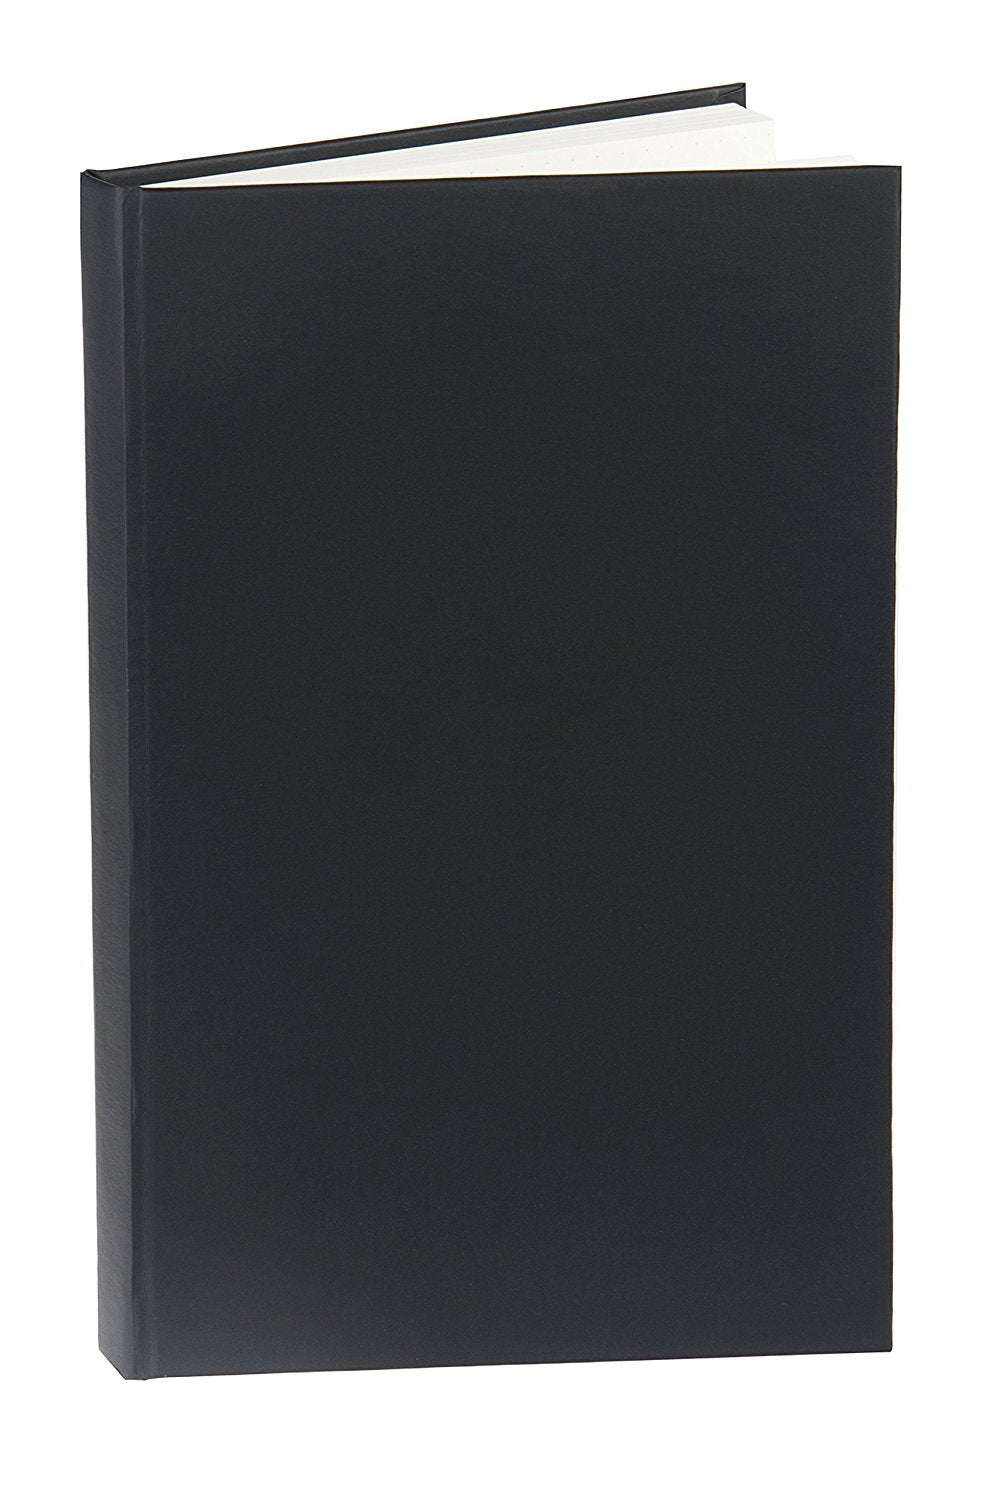 Blank Vegan Leather Hardcover 5x8 Notebook, 192 Pages